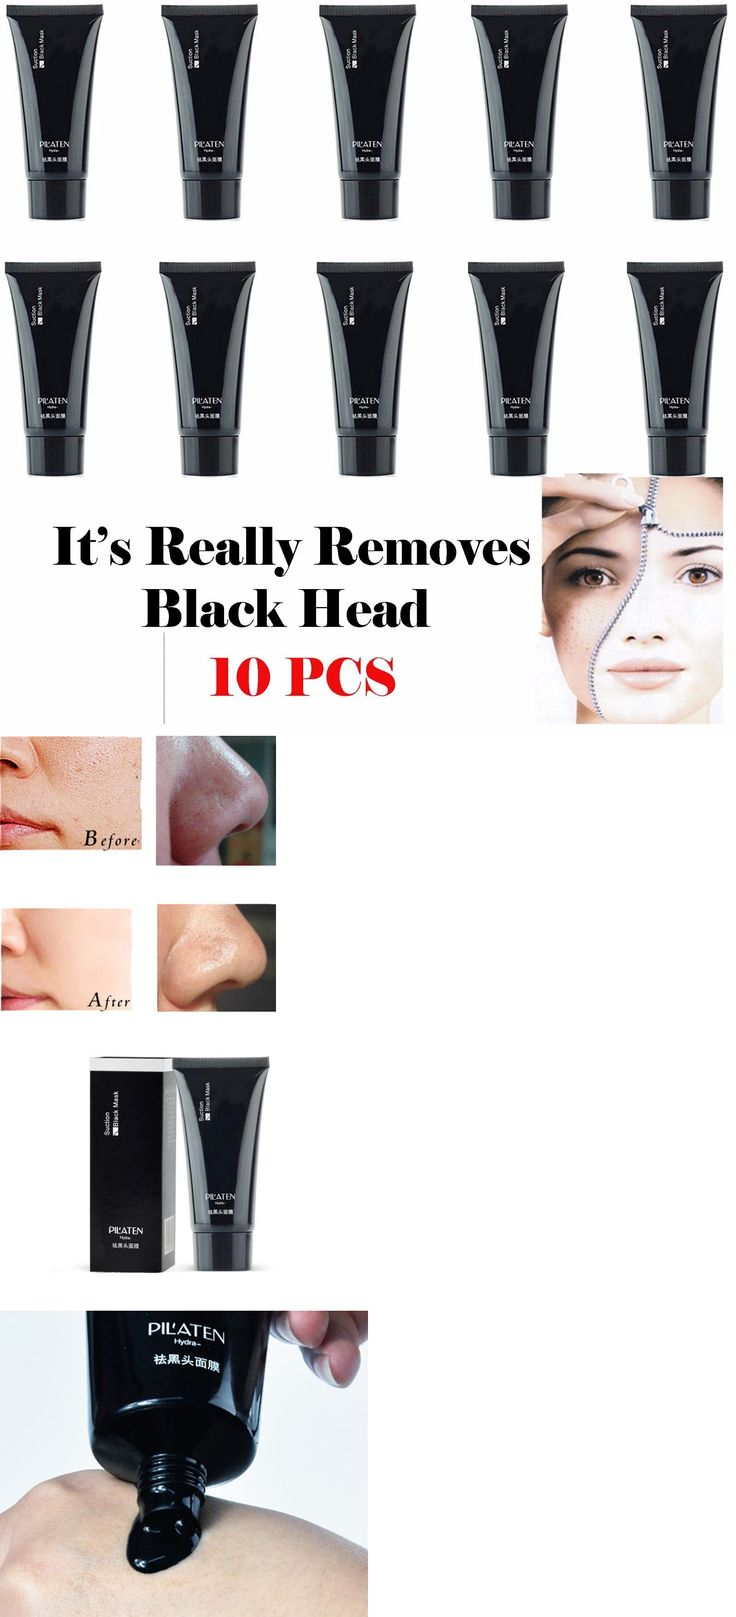 Masks and Peels: 10X Pilaten Blackhead Remover,Deep Cleansing Purifying Peel Acne Black Mud Face BUY IT NOW ONLY: $38.75 *** Get a free blackhead mask, link in bio! @beautycharcoal